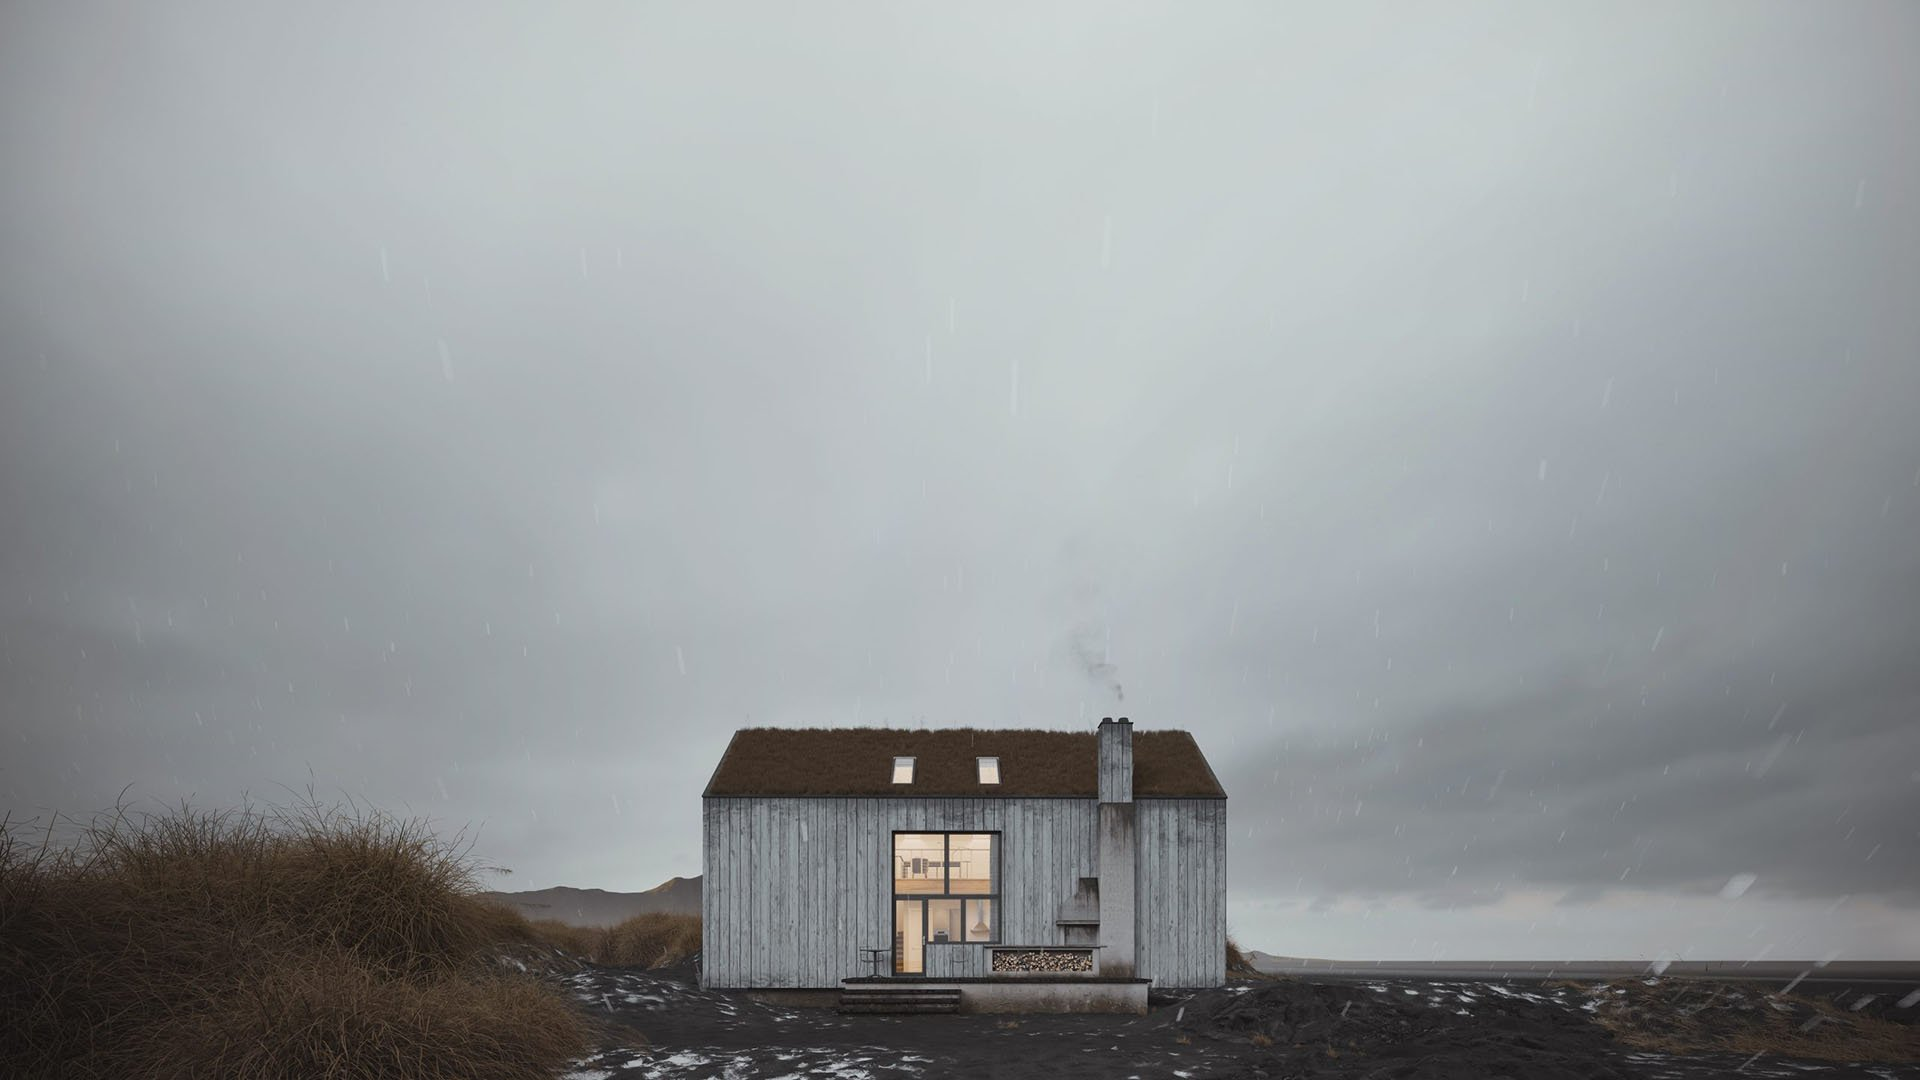 3D Exterior Rendering of a Minimalistic House